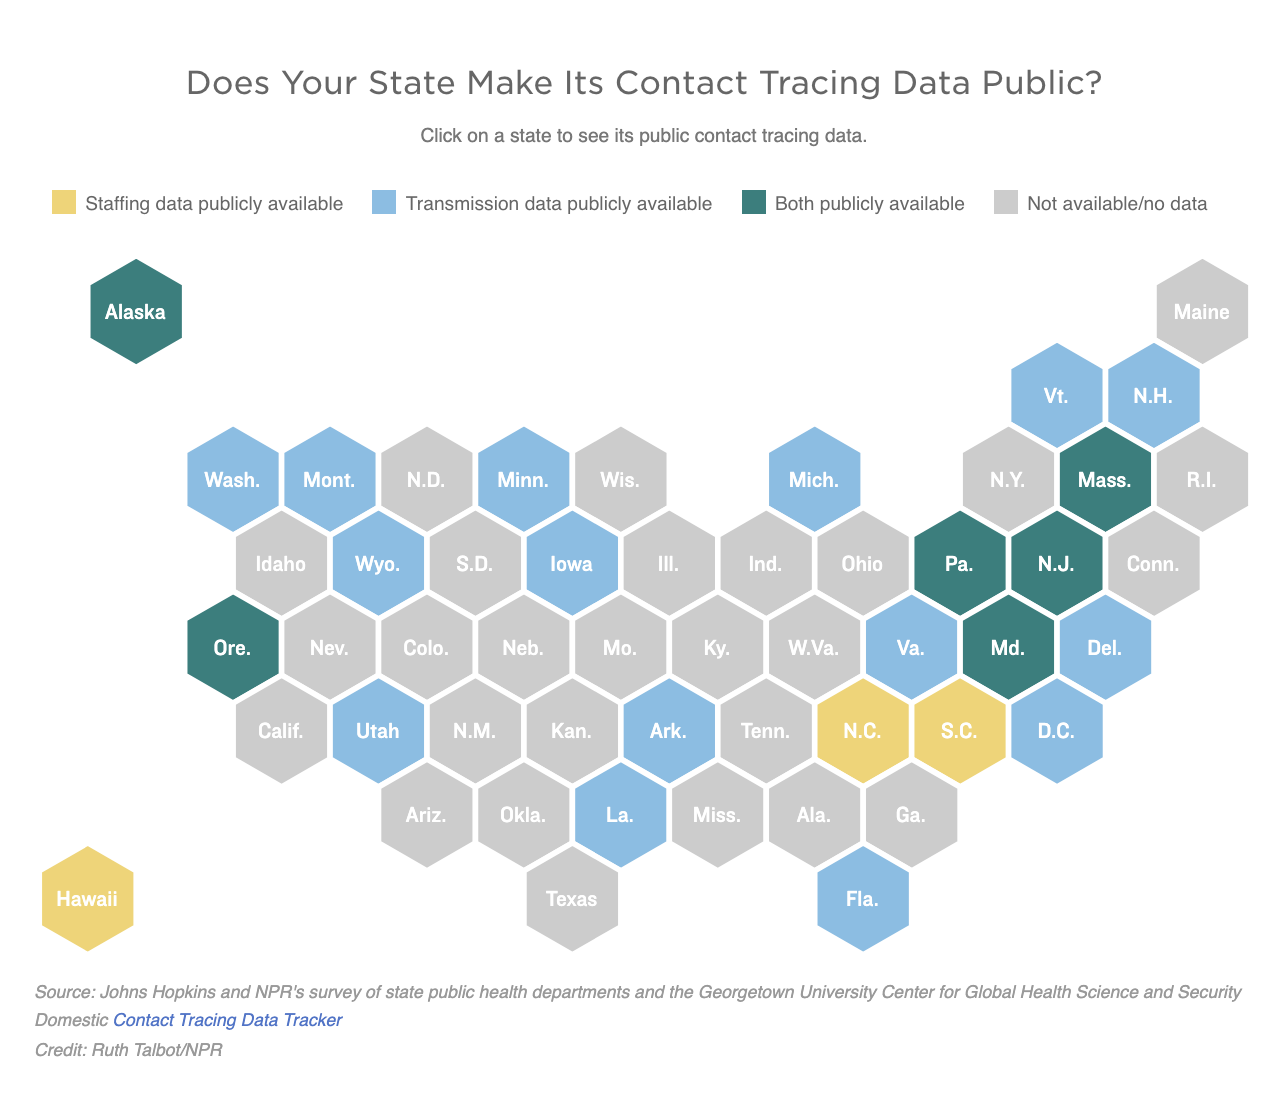 Map of which states make their contact tracing data public